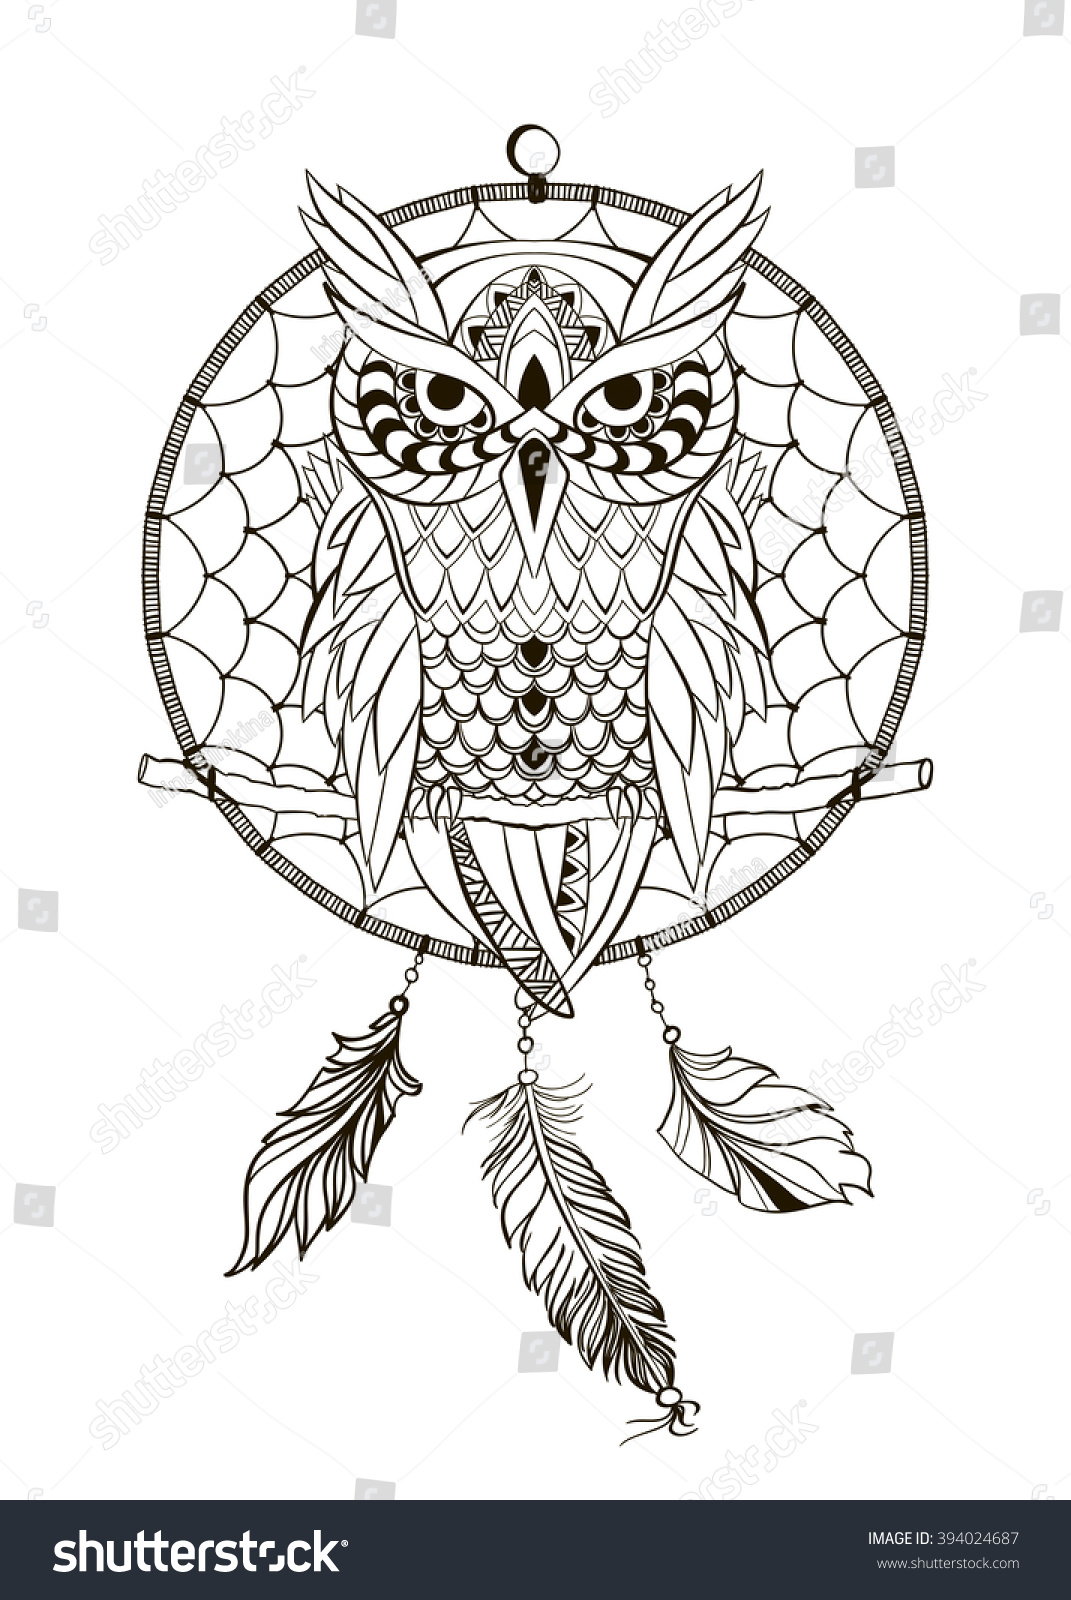 Coloring pages dream catchers - Coloring Book For Adult Dream Catcher Owl Vector Illustration Isolated Retro Banner Invitation